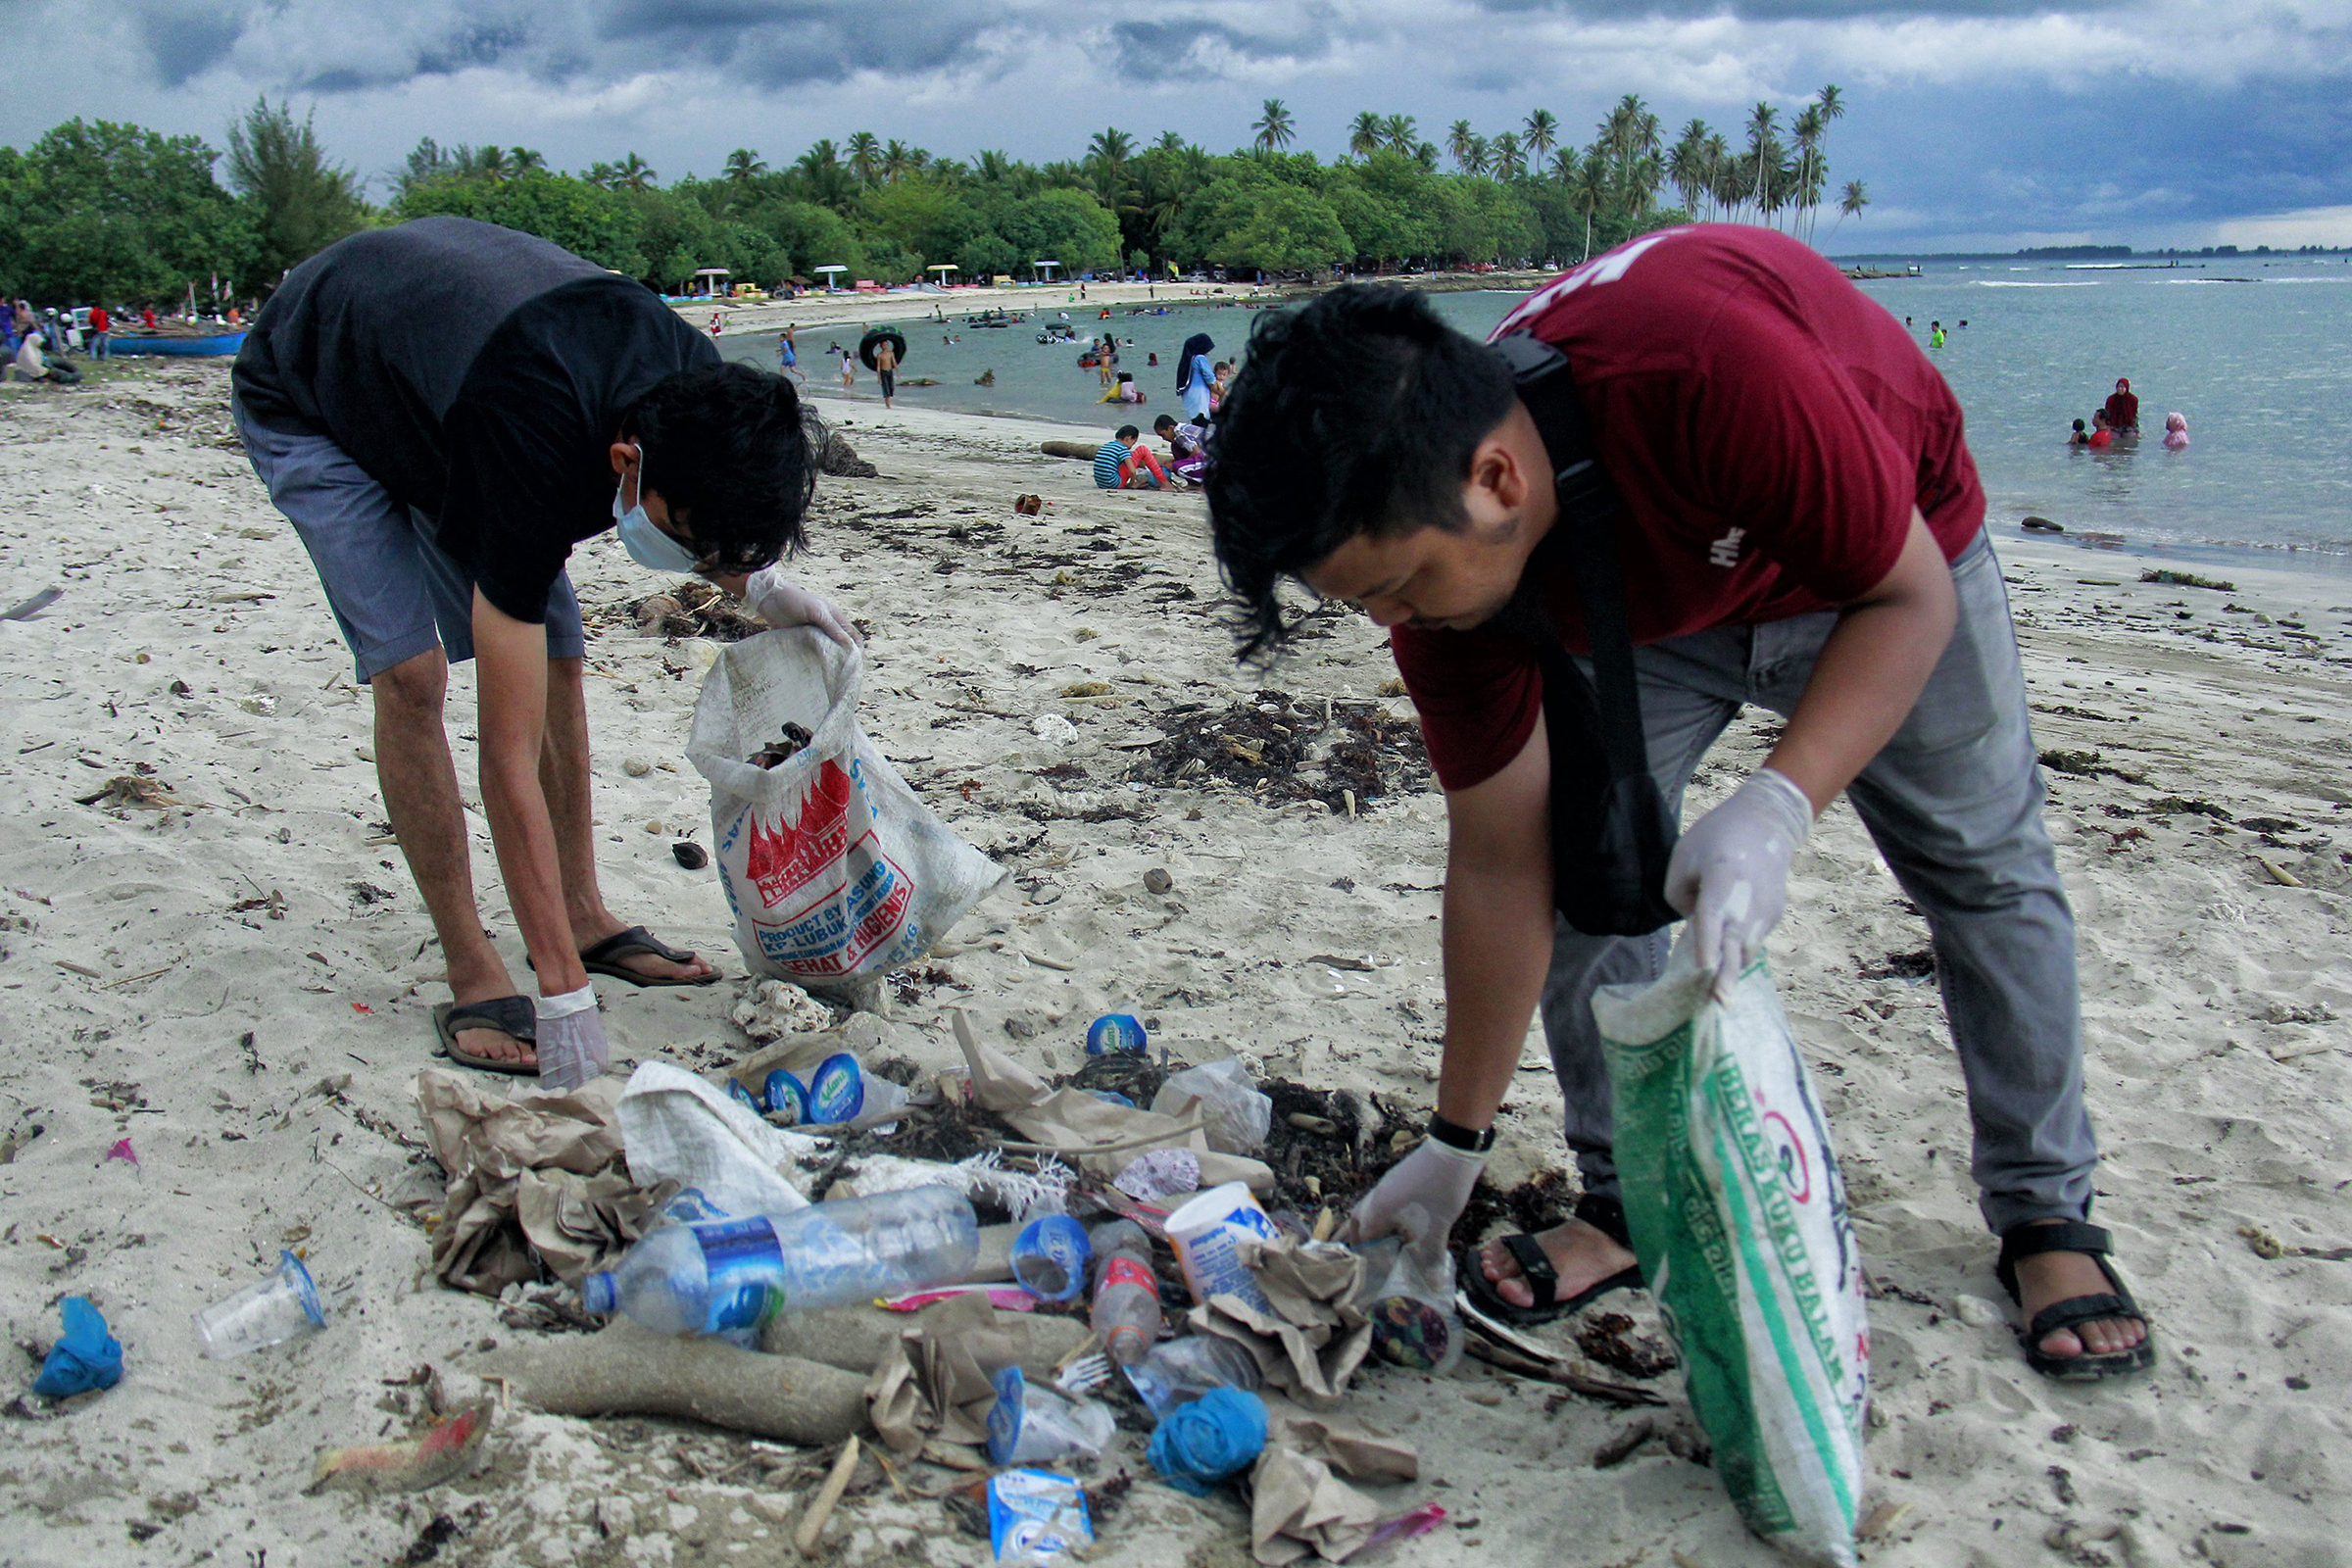 Students from the Environmental Care Movement (GPL) clean up rubbish on the Coastal Tourism Area of Lhok Bubon, in Indonesia on Aug.18, 2019.